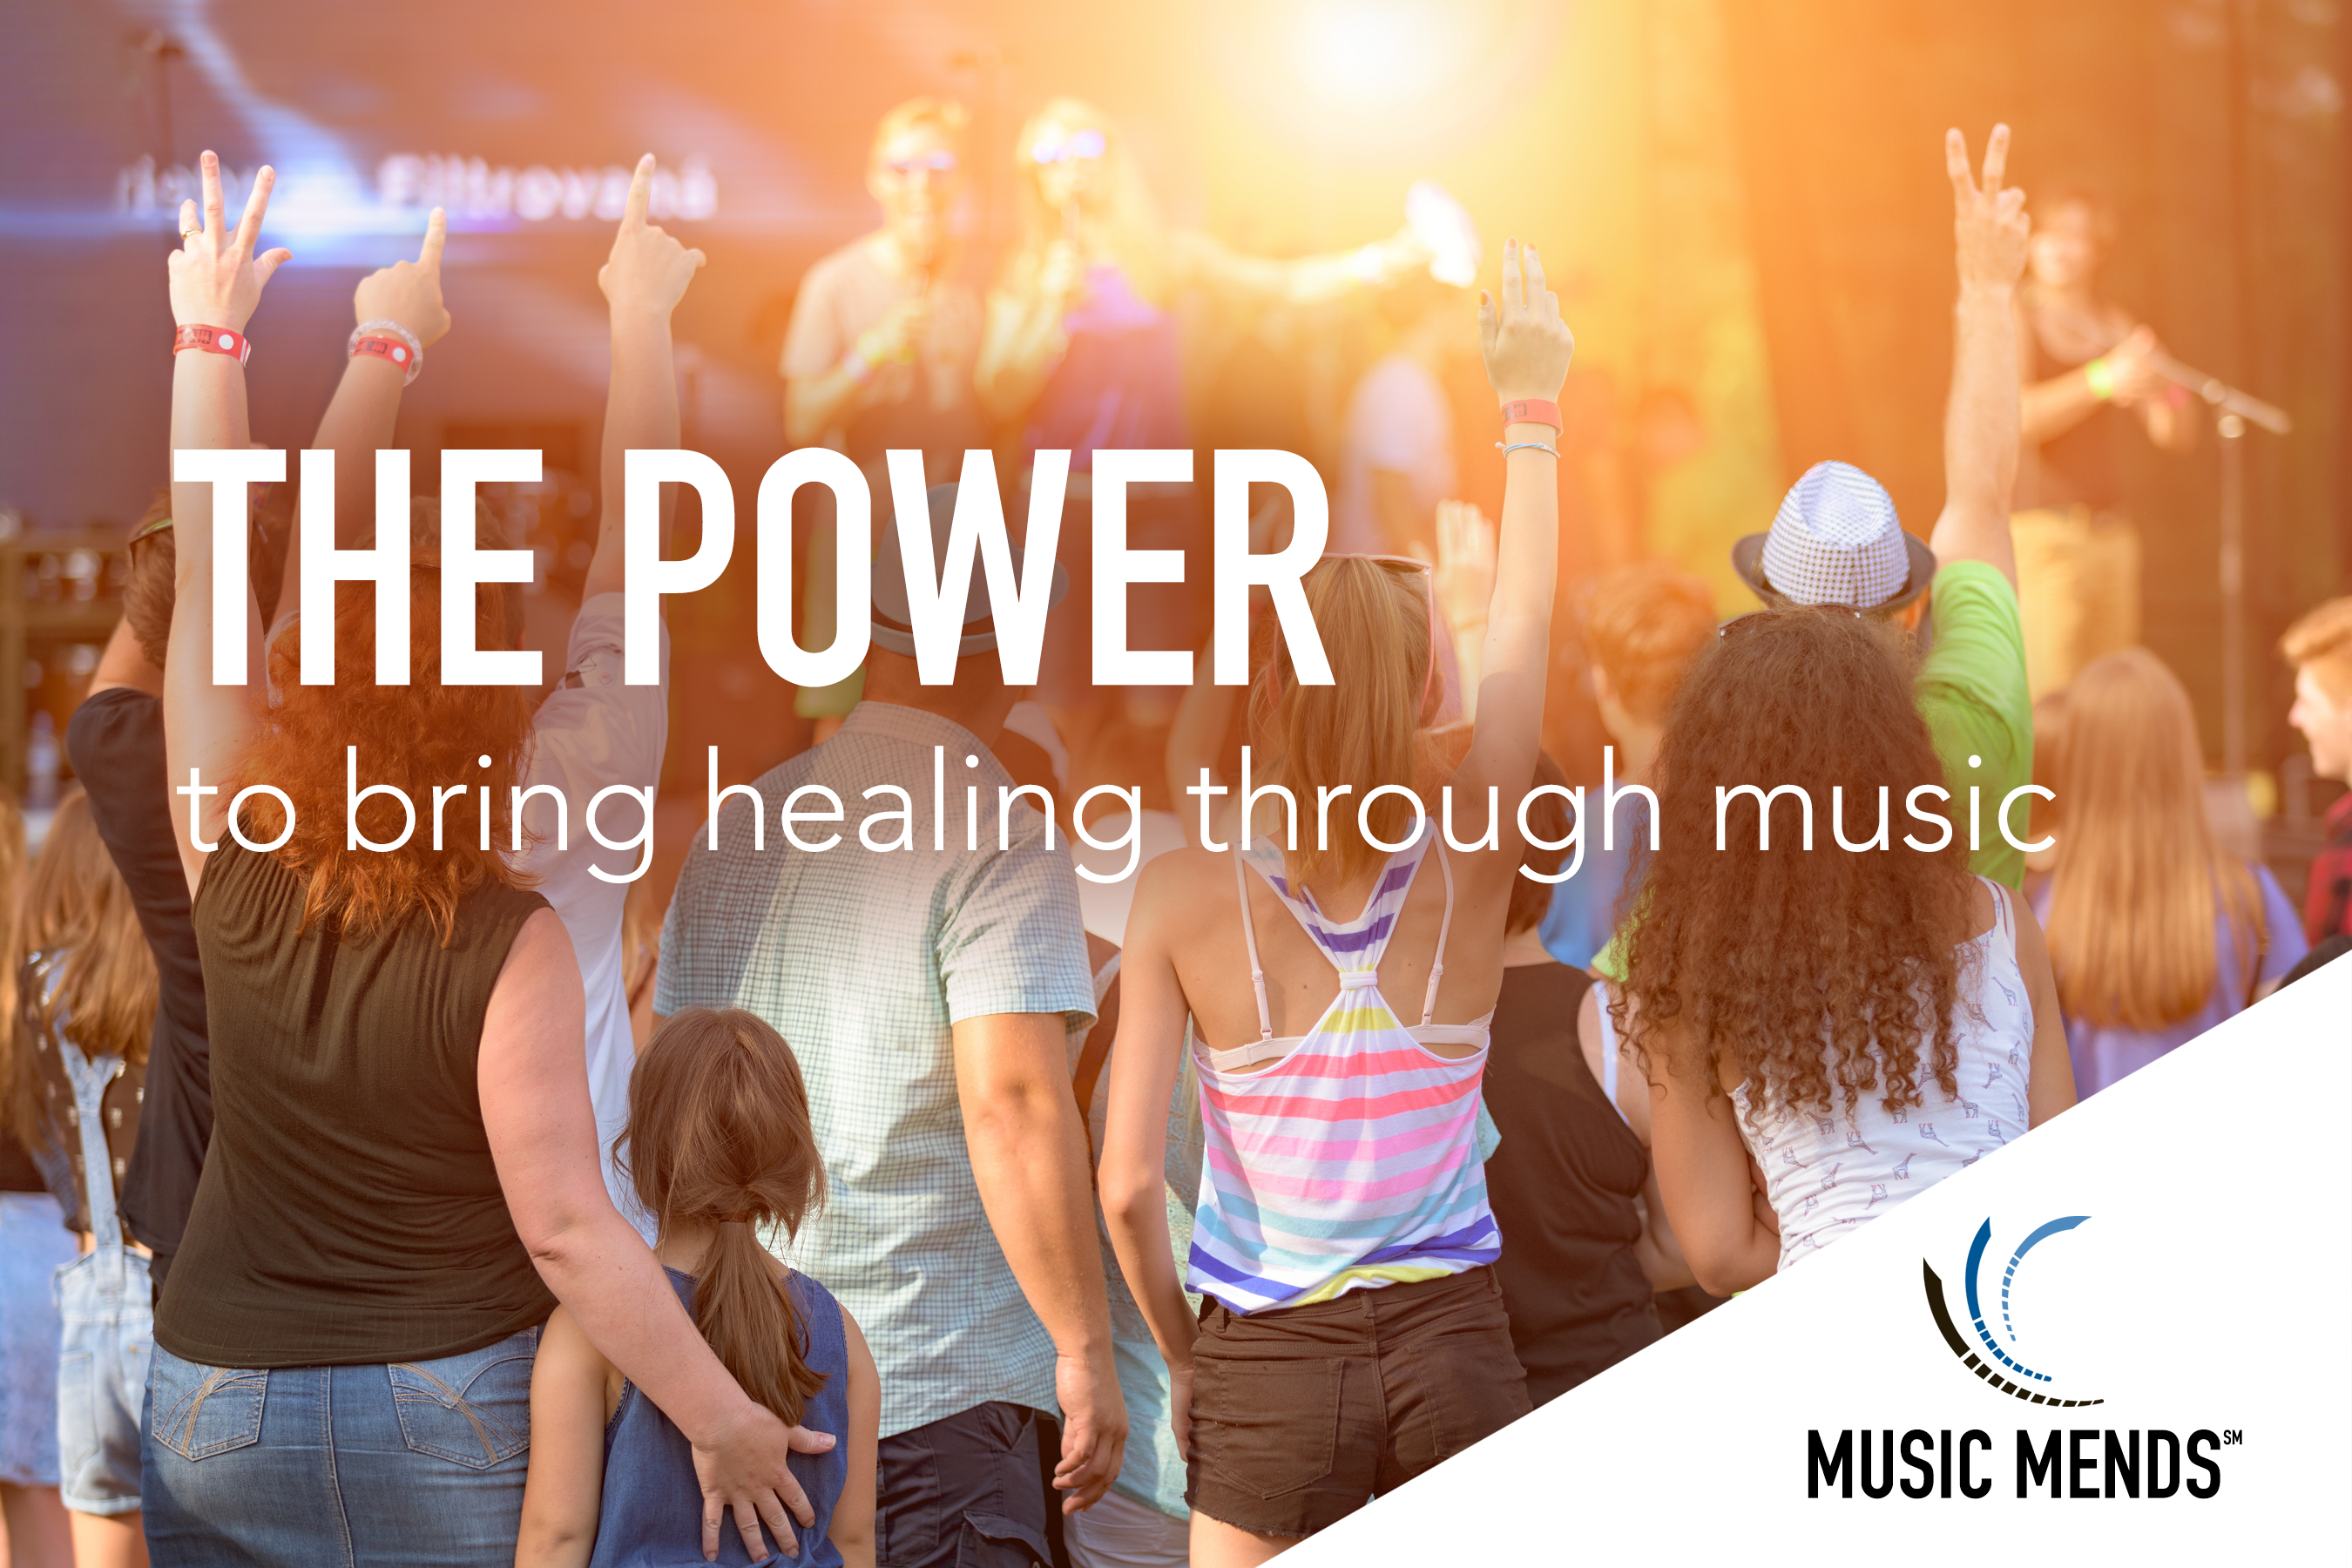 Music Mends provides peace of mind and allows musicians, managers, partners and affected communities to focus on what's important during a tragic event – family, friends and loved ones